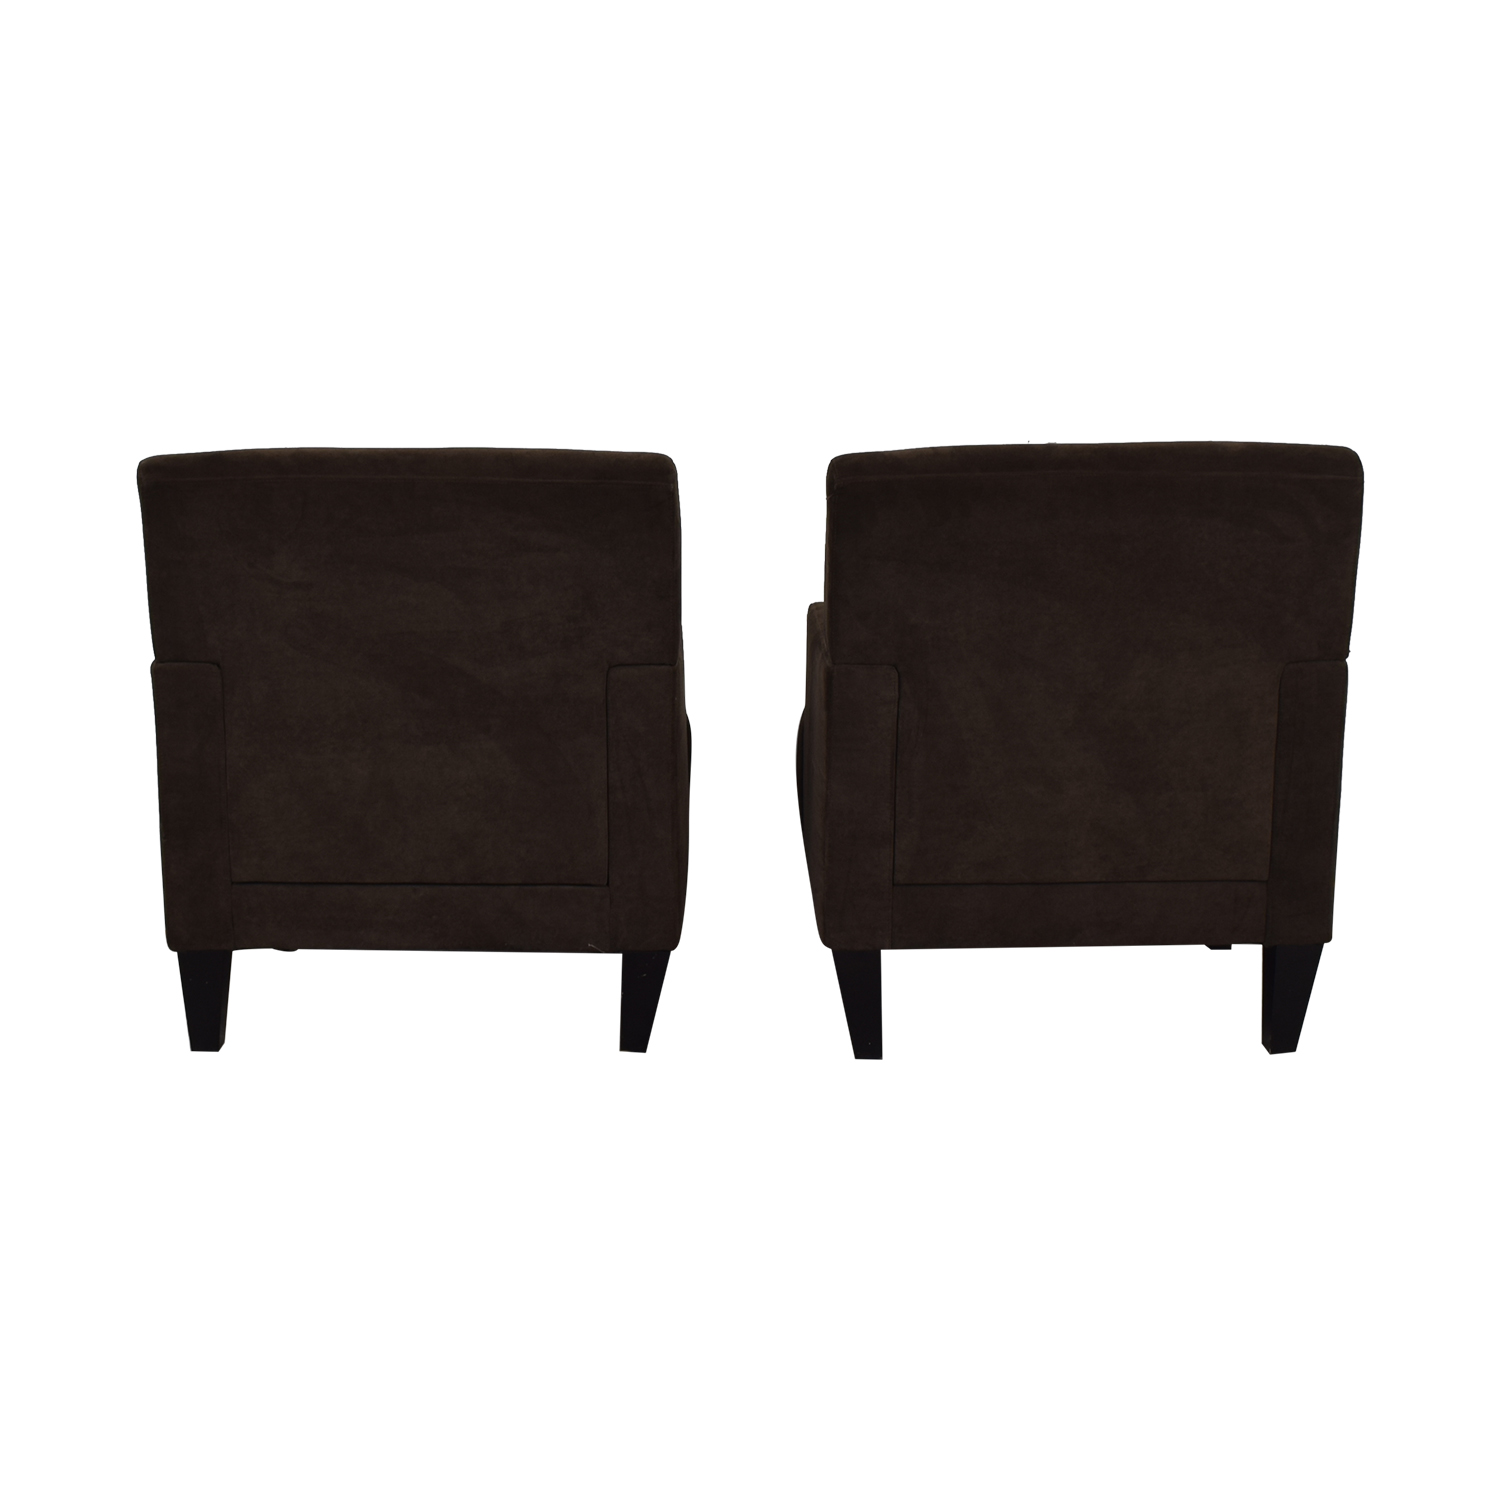 Havertys Havertys Brown Arm Accent Chairs dimensions